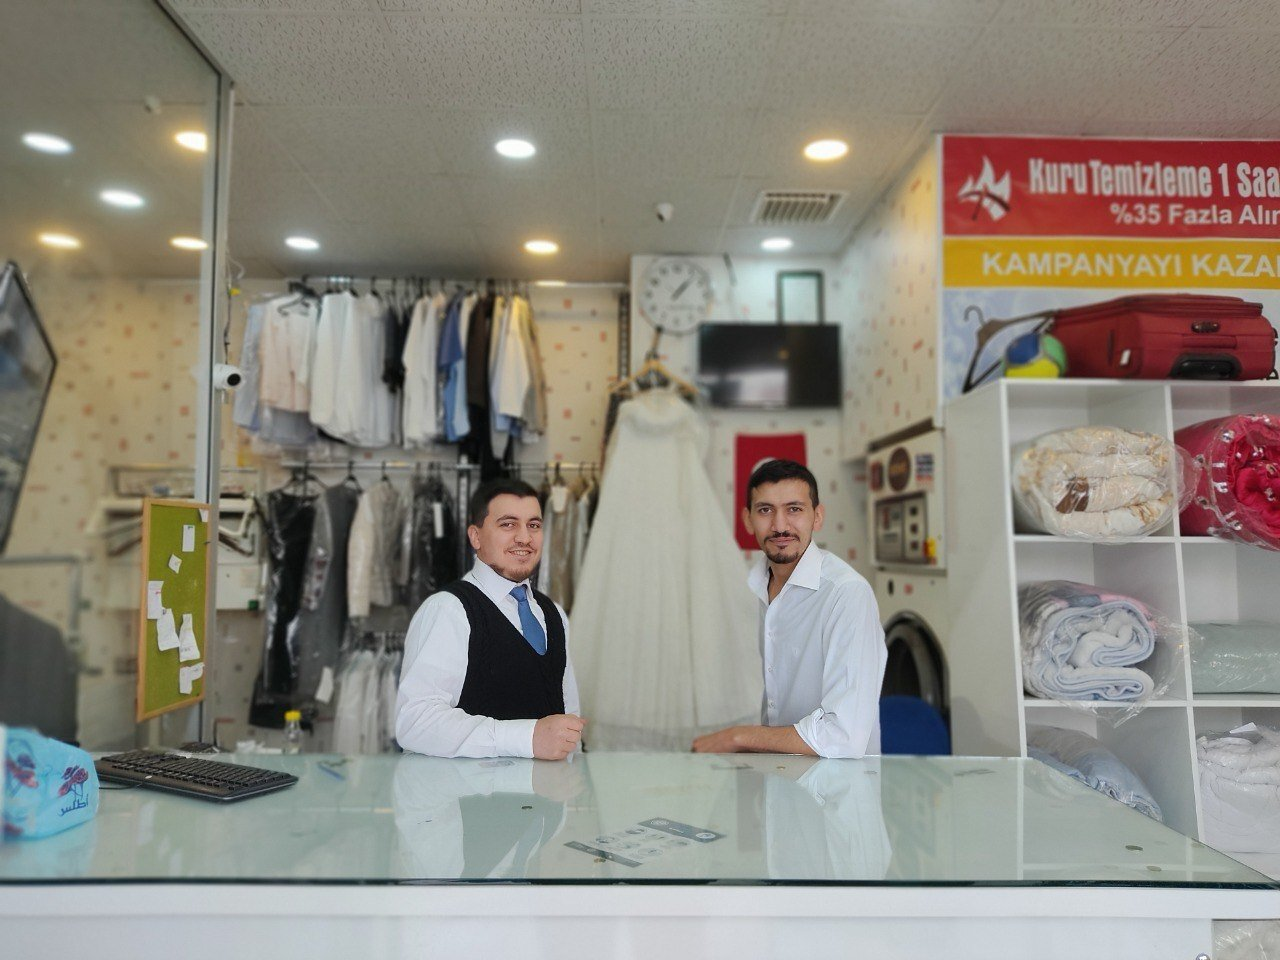 Brothers Mohammed and Ahmed Mulla stand behind the counter at their dry cleaning center in the capital Ankara, Turkey, June 19, 2021. (AA Photo)